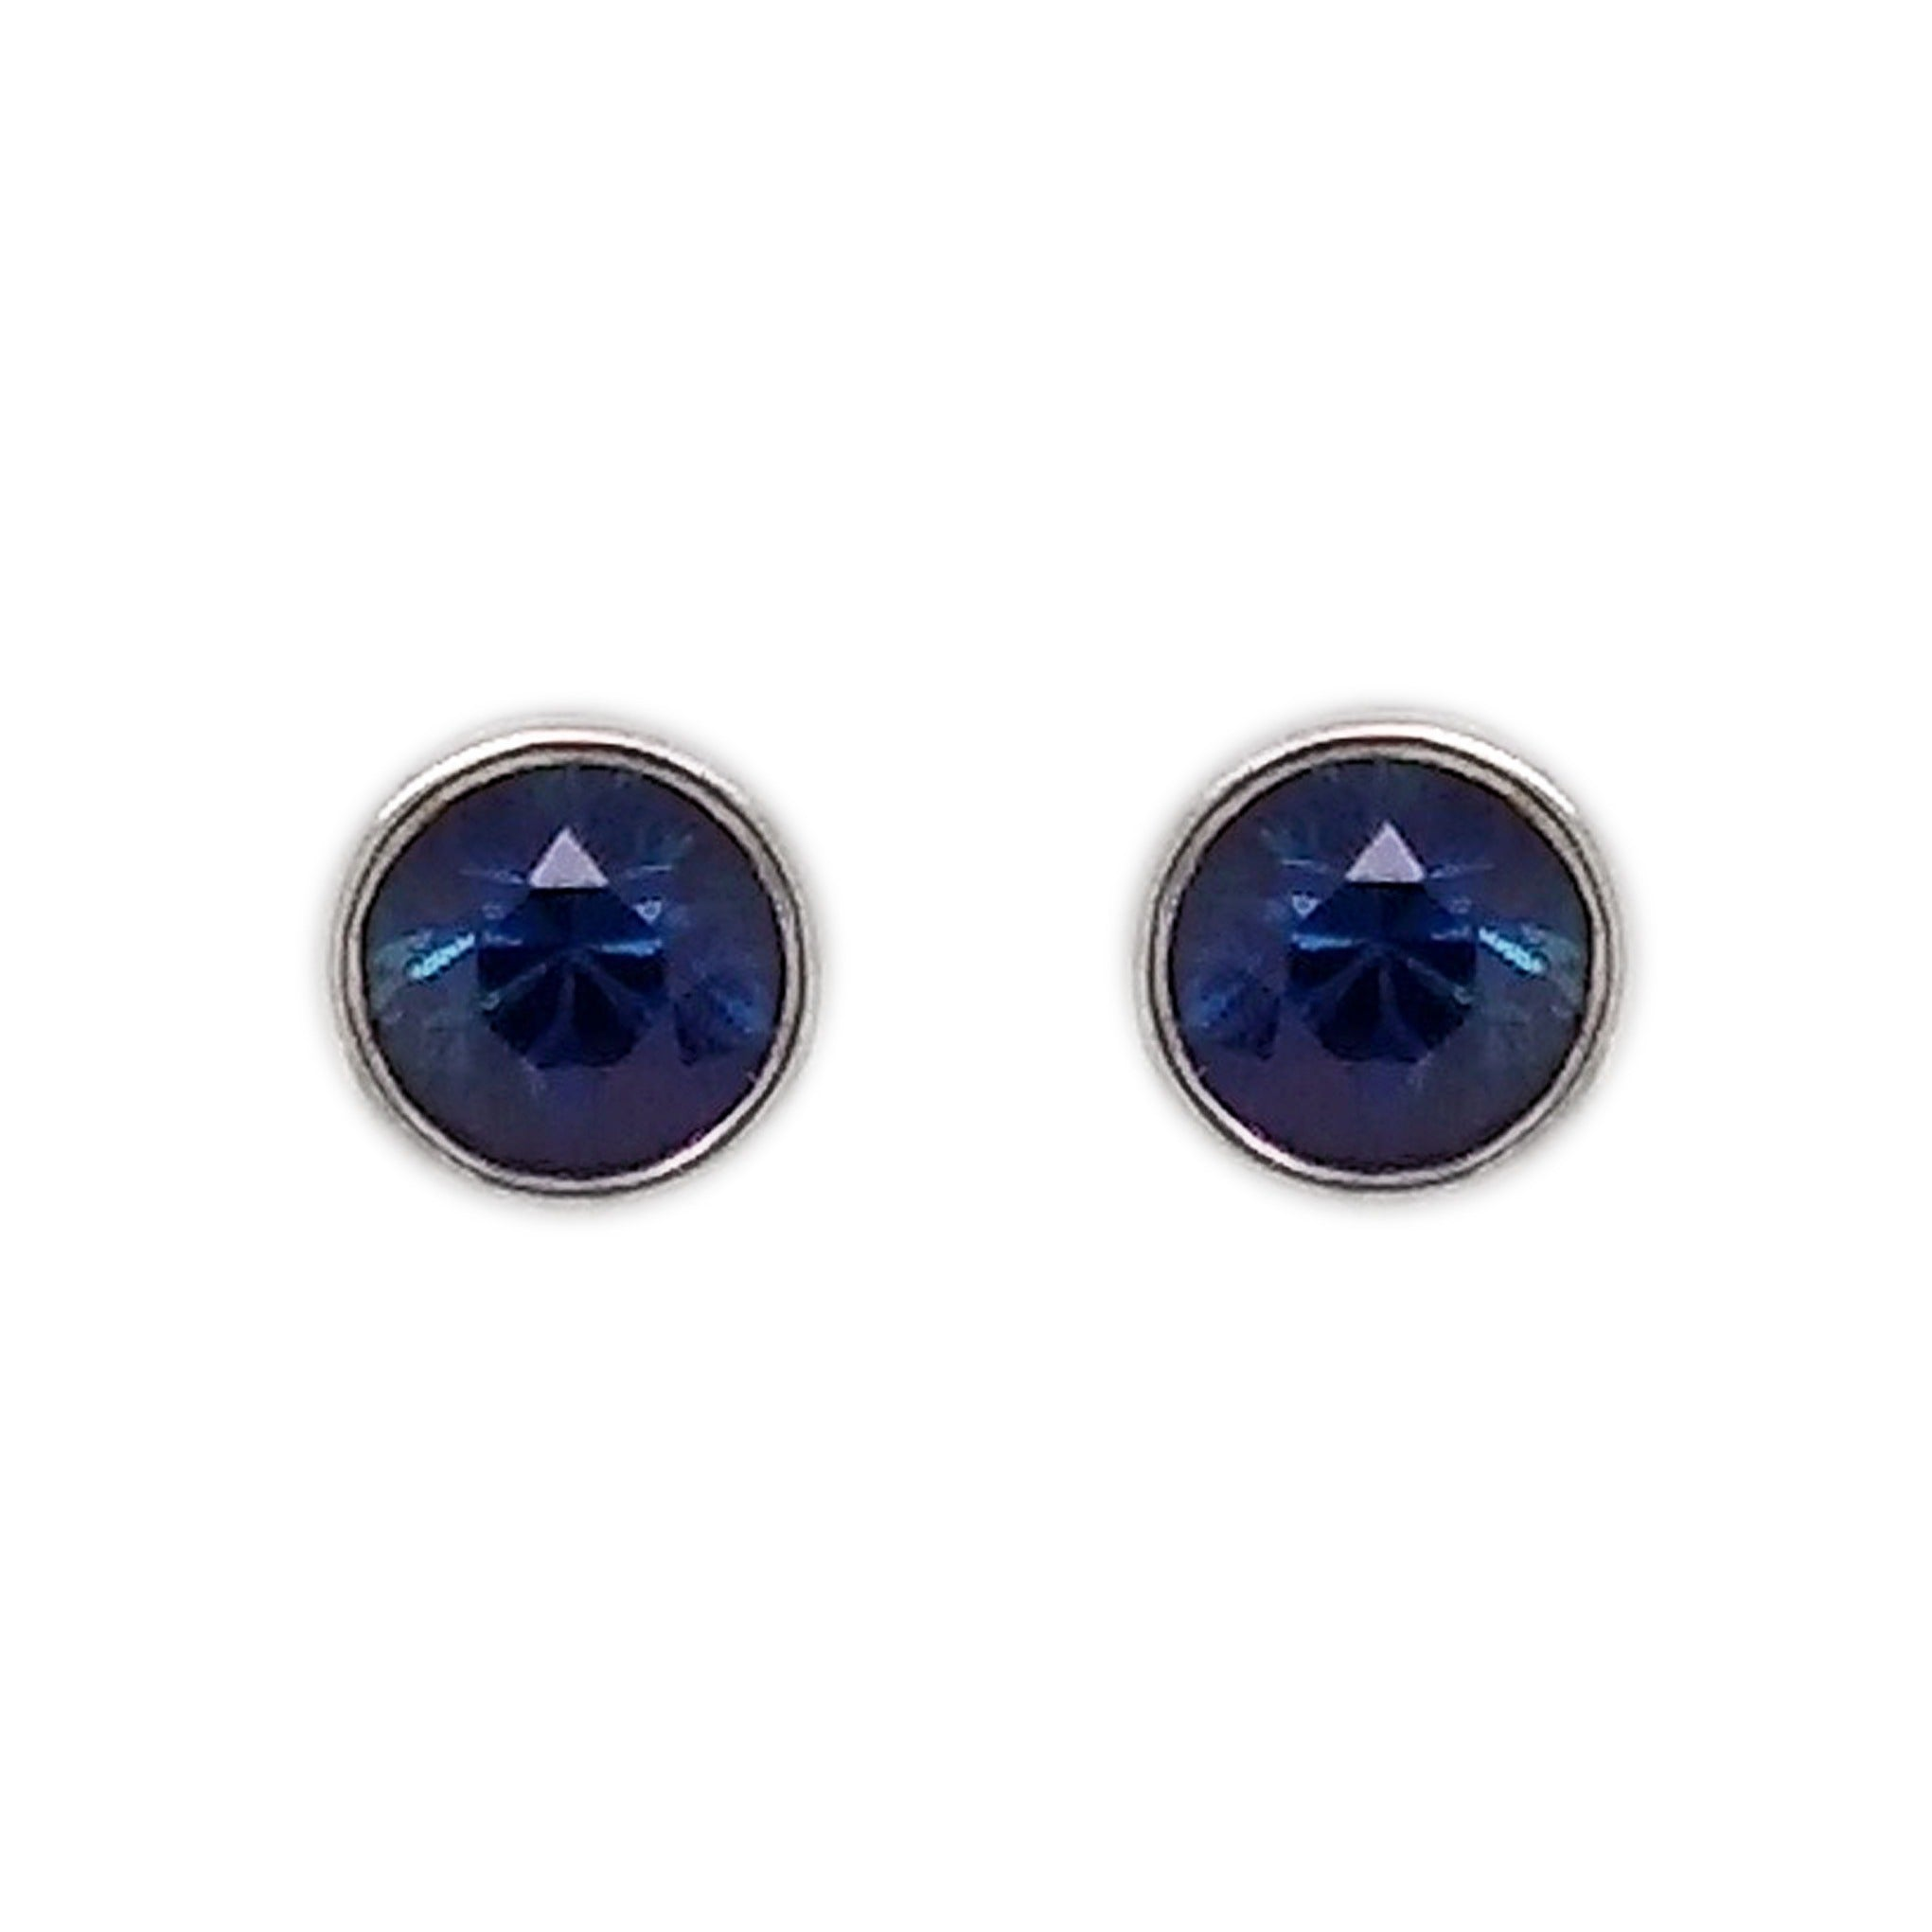 18ct White Gold Sapphire Cabochon Earrings